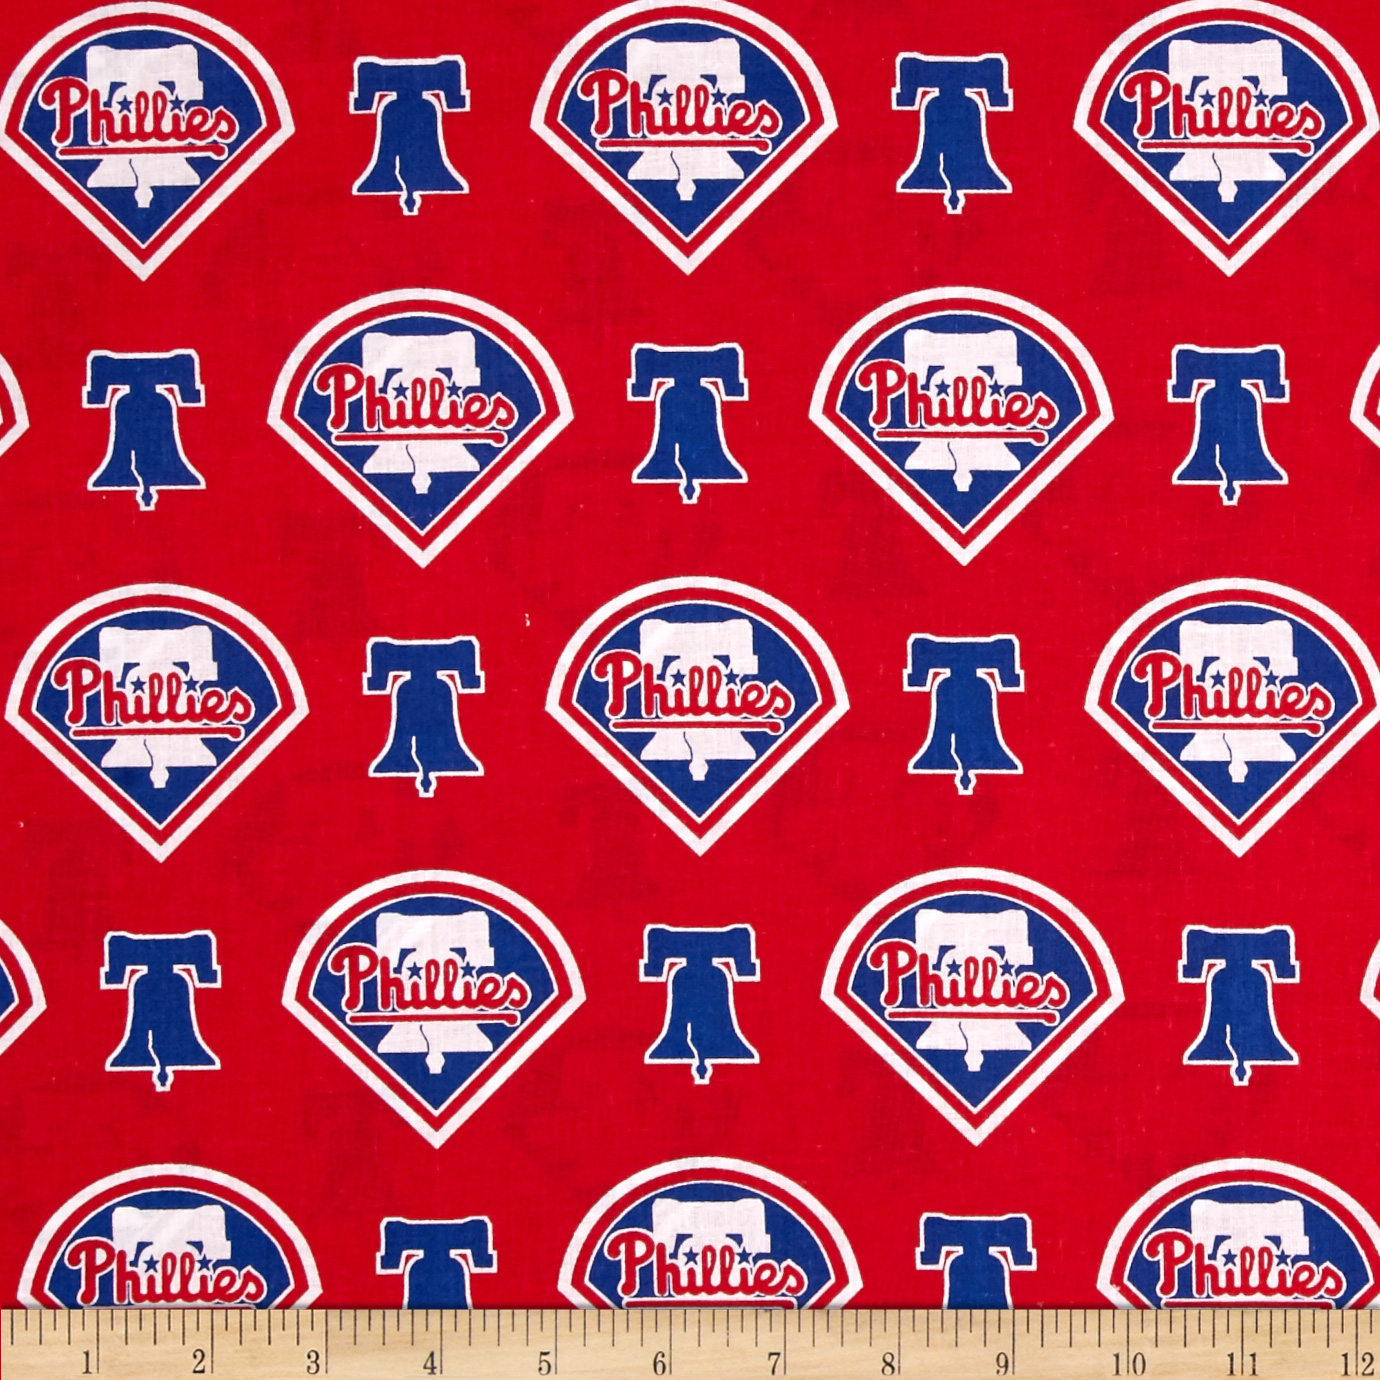 MLB Cotton Broadcloth Philadelphia Phillies Red/Blue Fabric by Fabric Traditions in USA